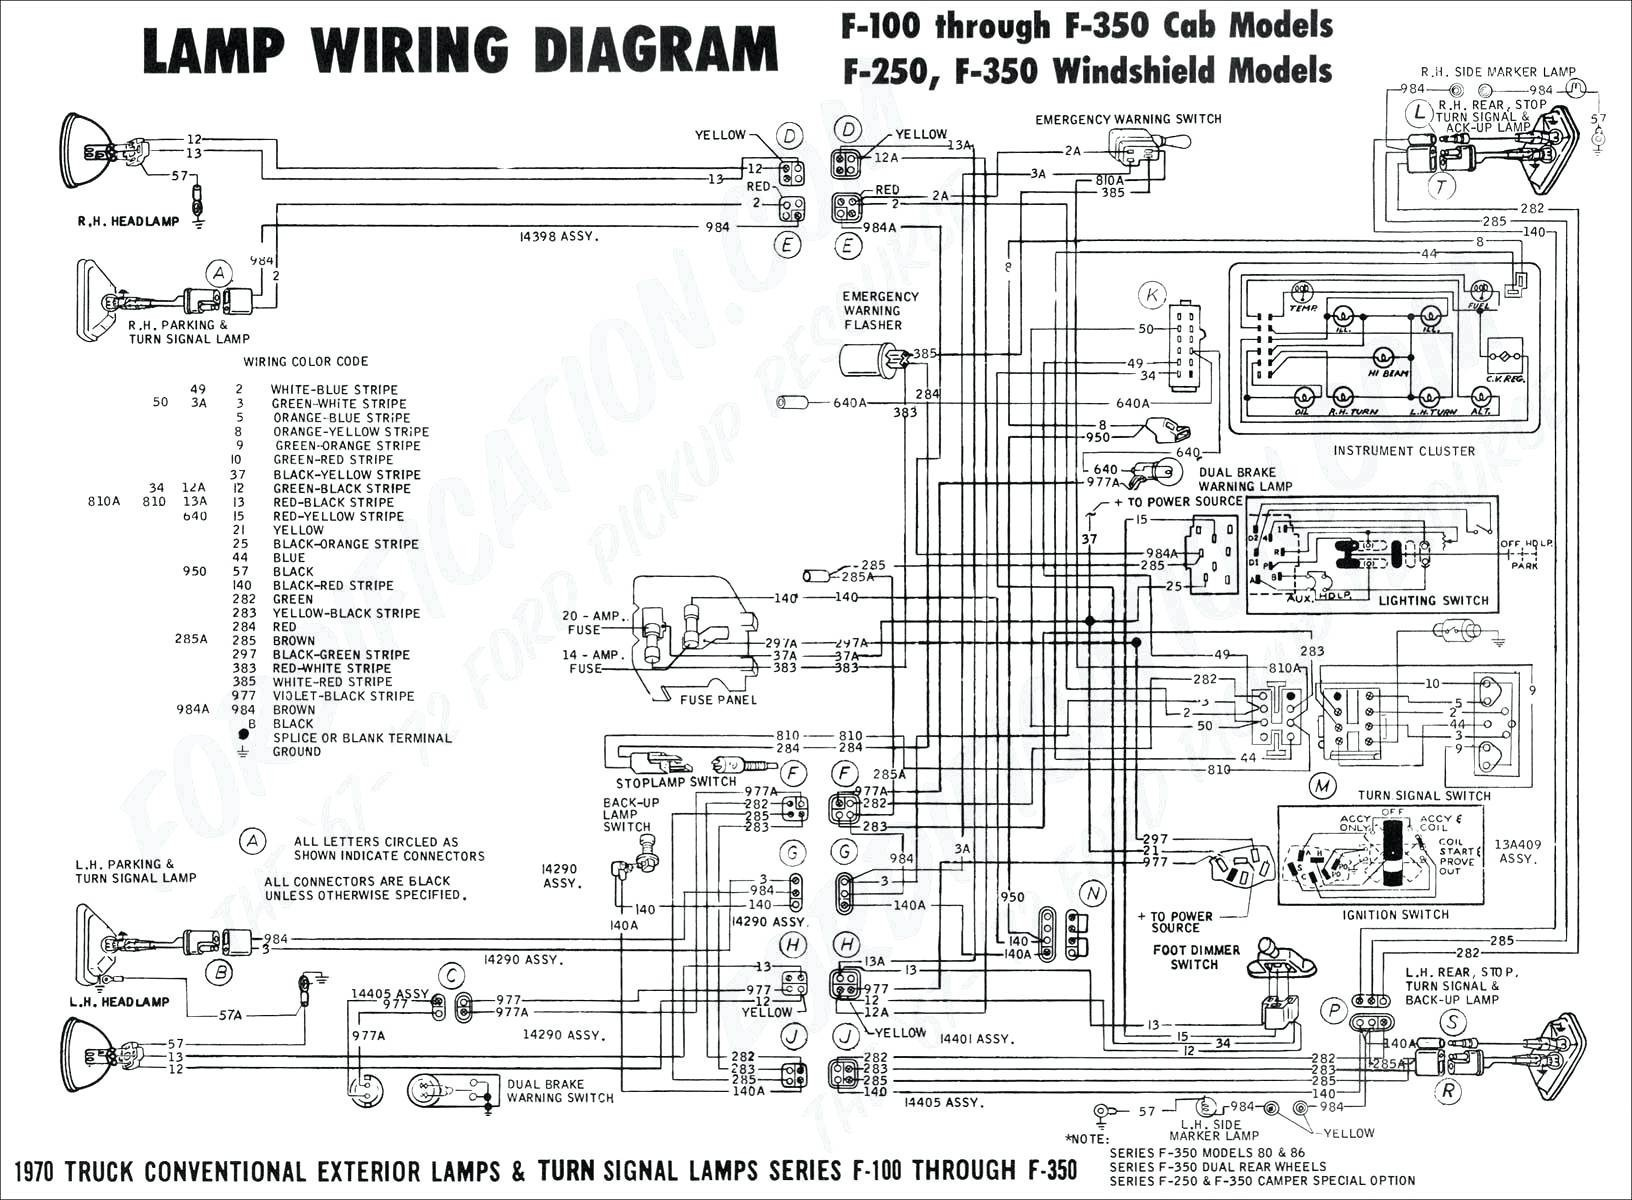 5 7 Vortec Engine Diagram 2 1999 5 7 Vortec Engine Diagram Wiring Diagram toolbox